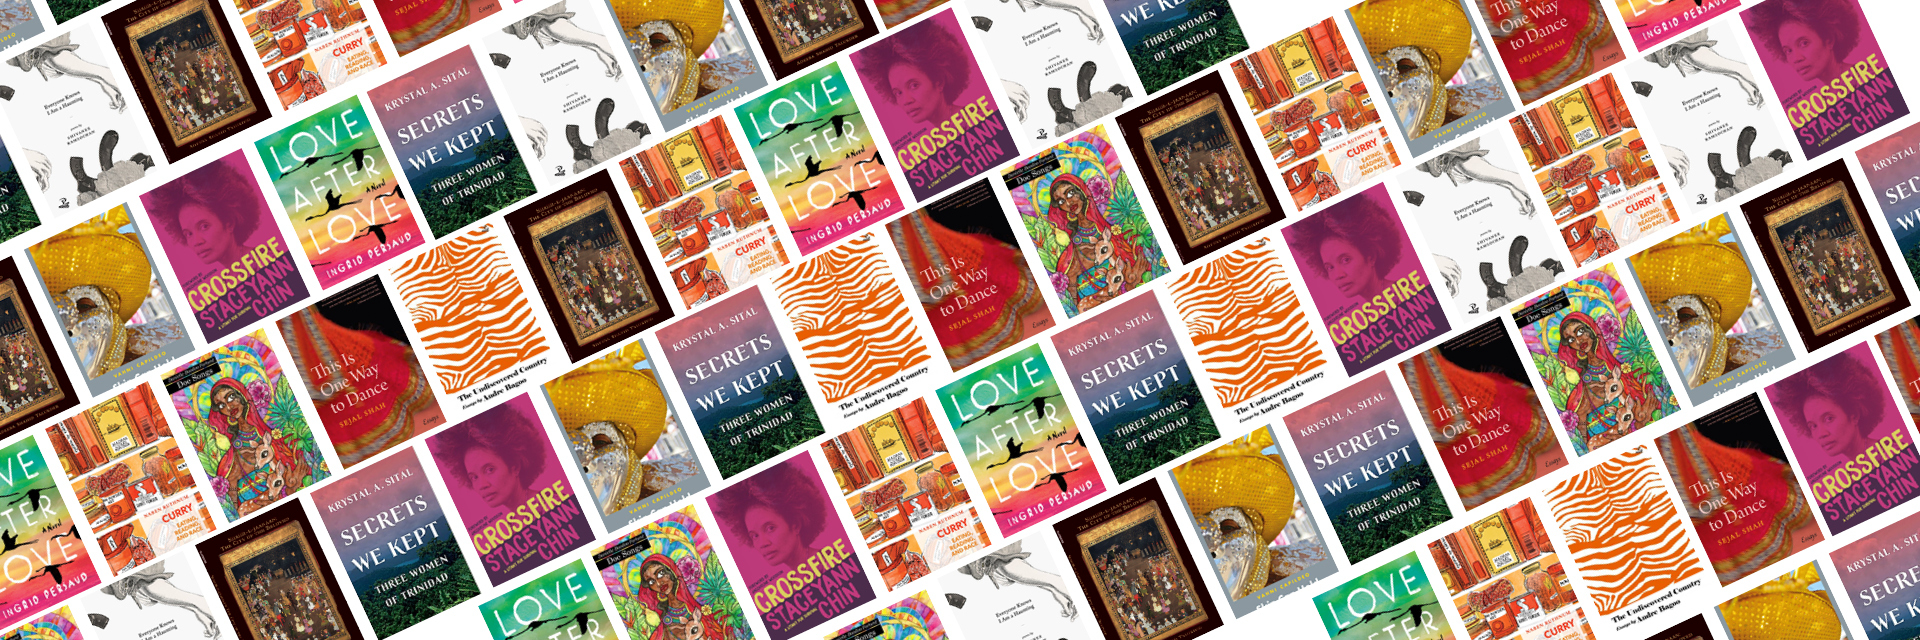 Across the Asian Americas: An APA Heritage Month Reading List Book Covers